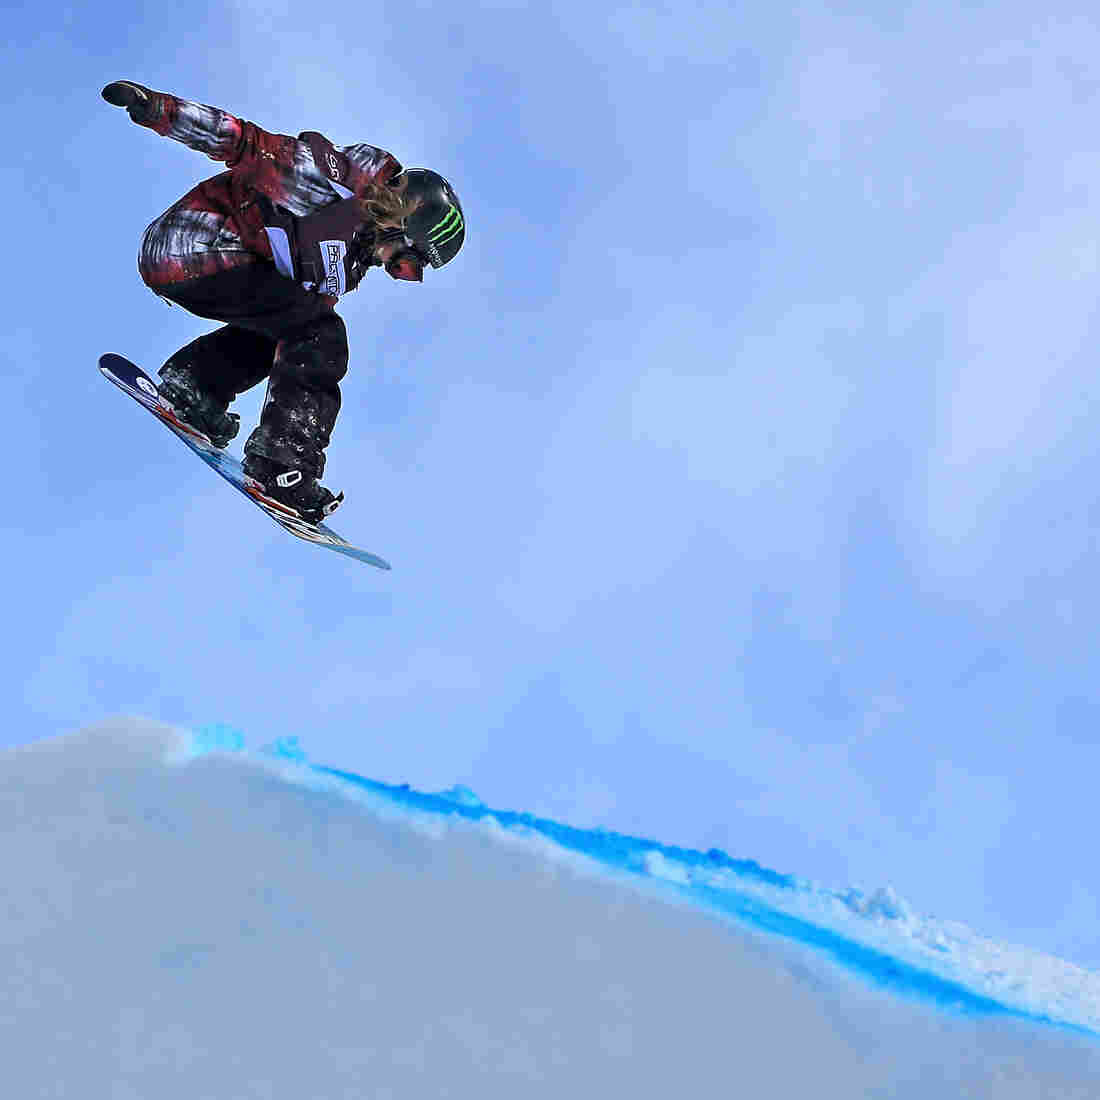 Jamie Anderson competes in the FIS Snowboard Slopestyle World Cup at the U.S. Grand Prix in January 2013, Copper Mountain, Colo.